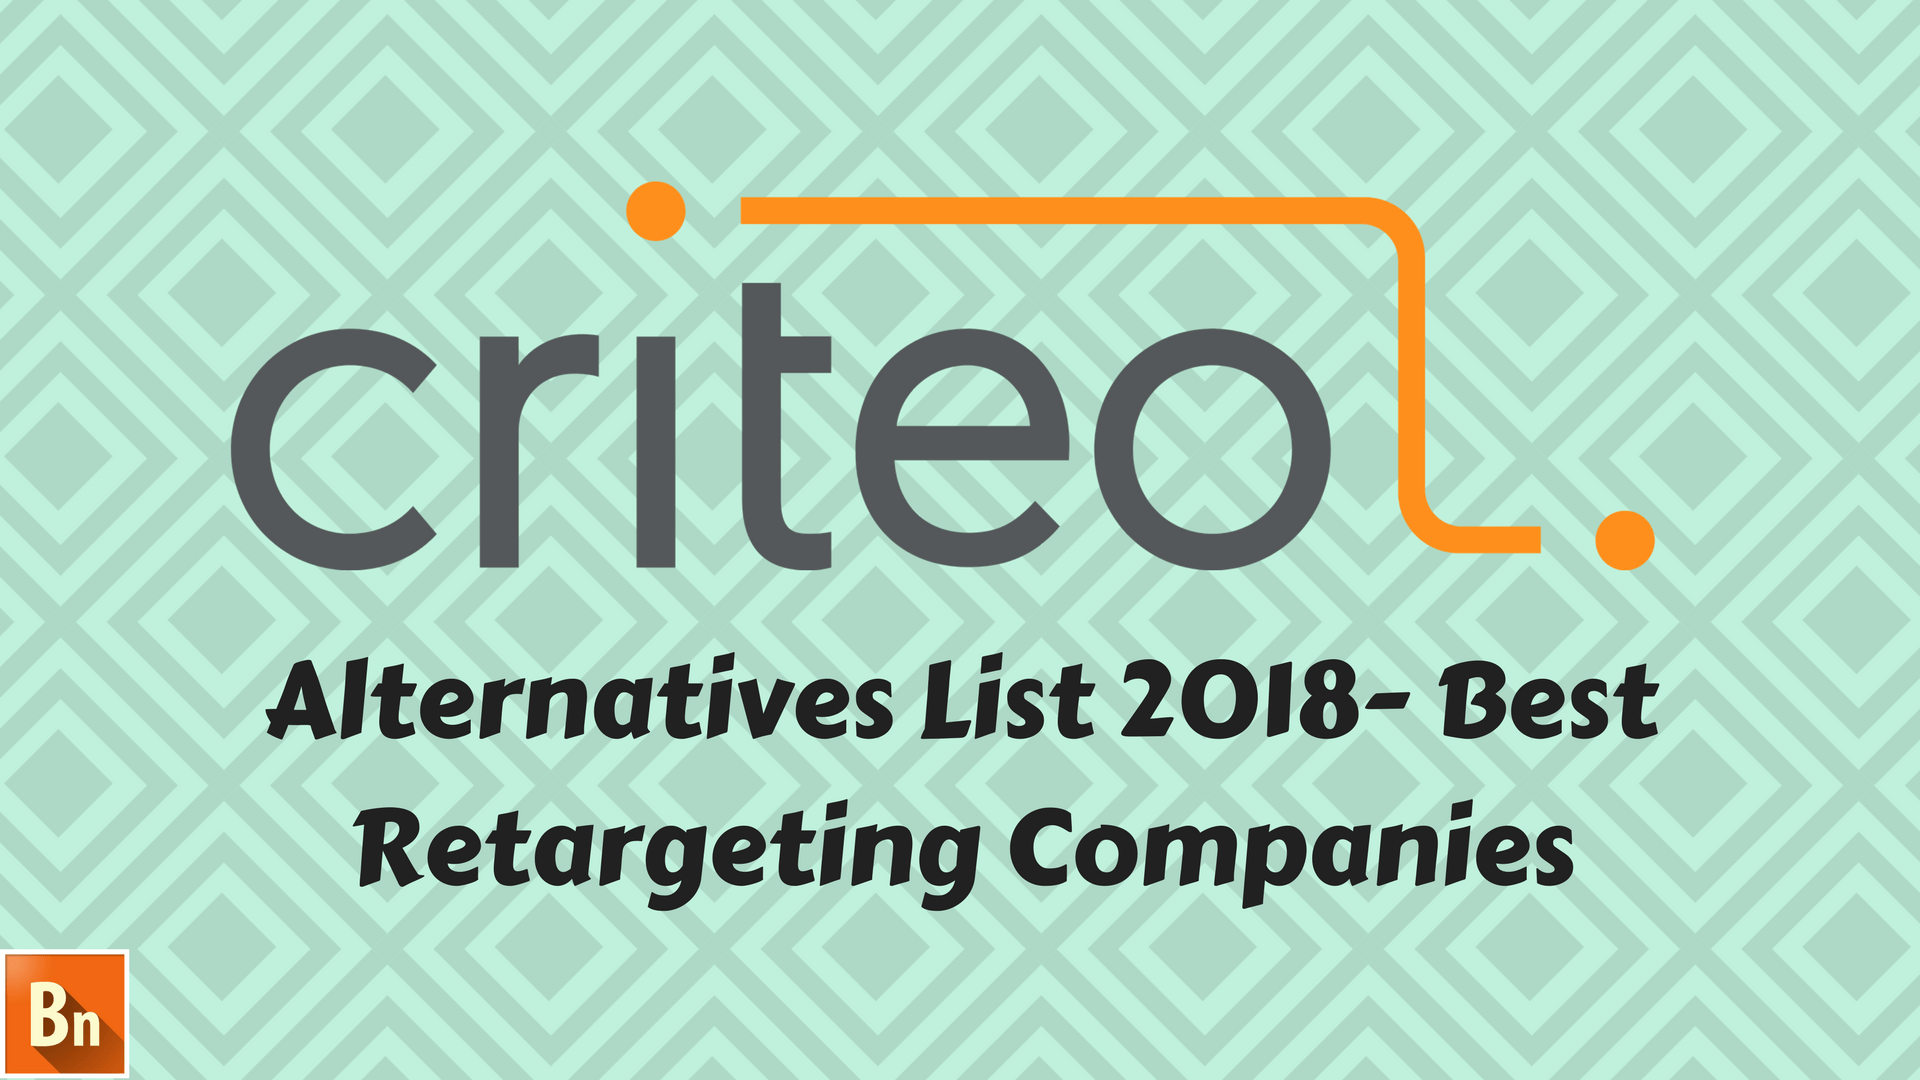 Criteo Alternatives List 2018- Best Retargeting Companies